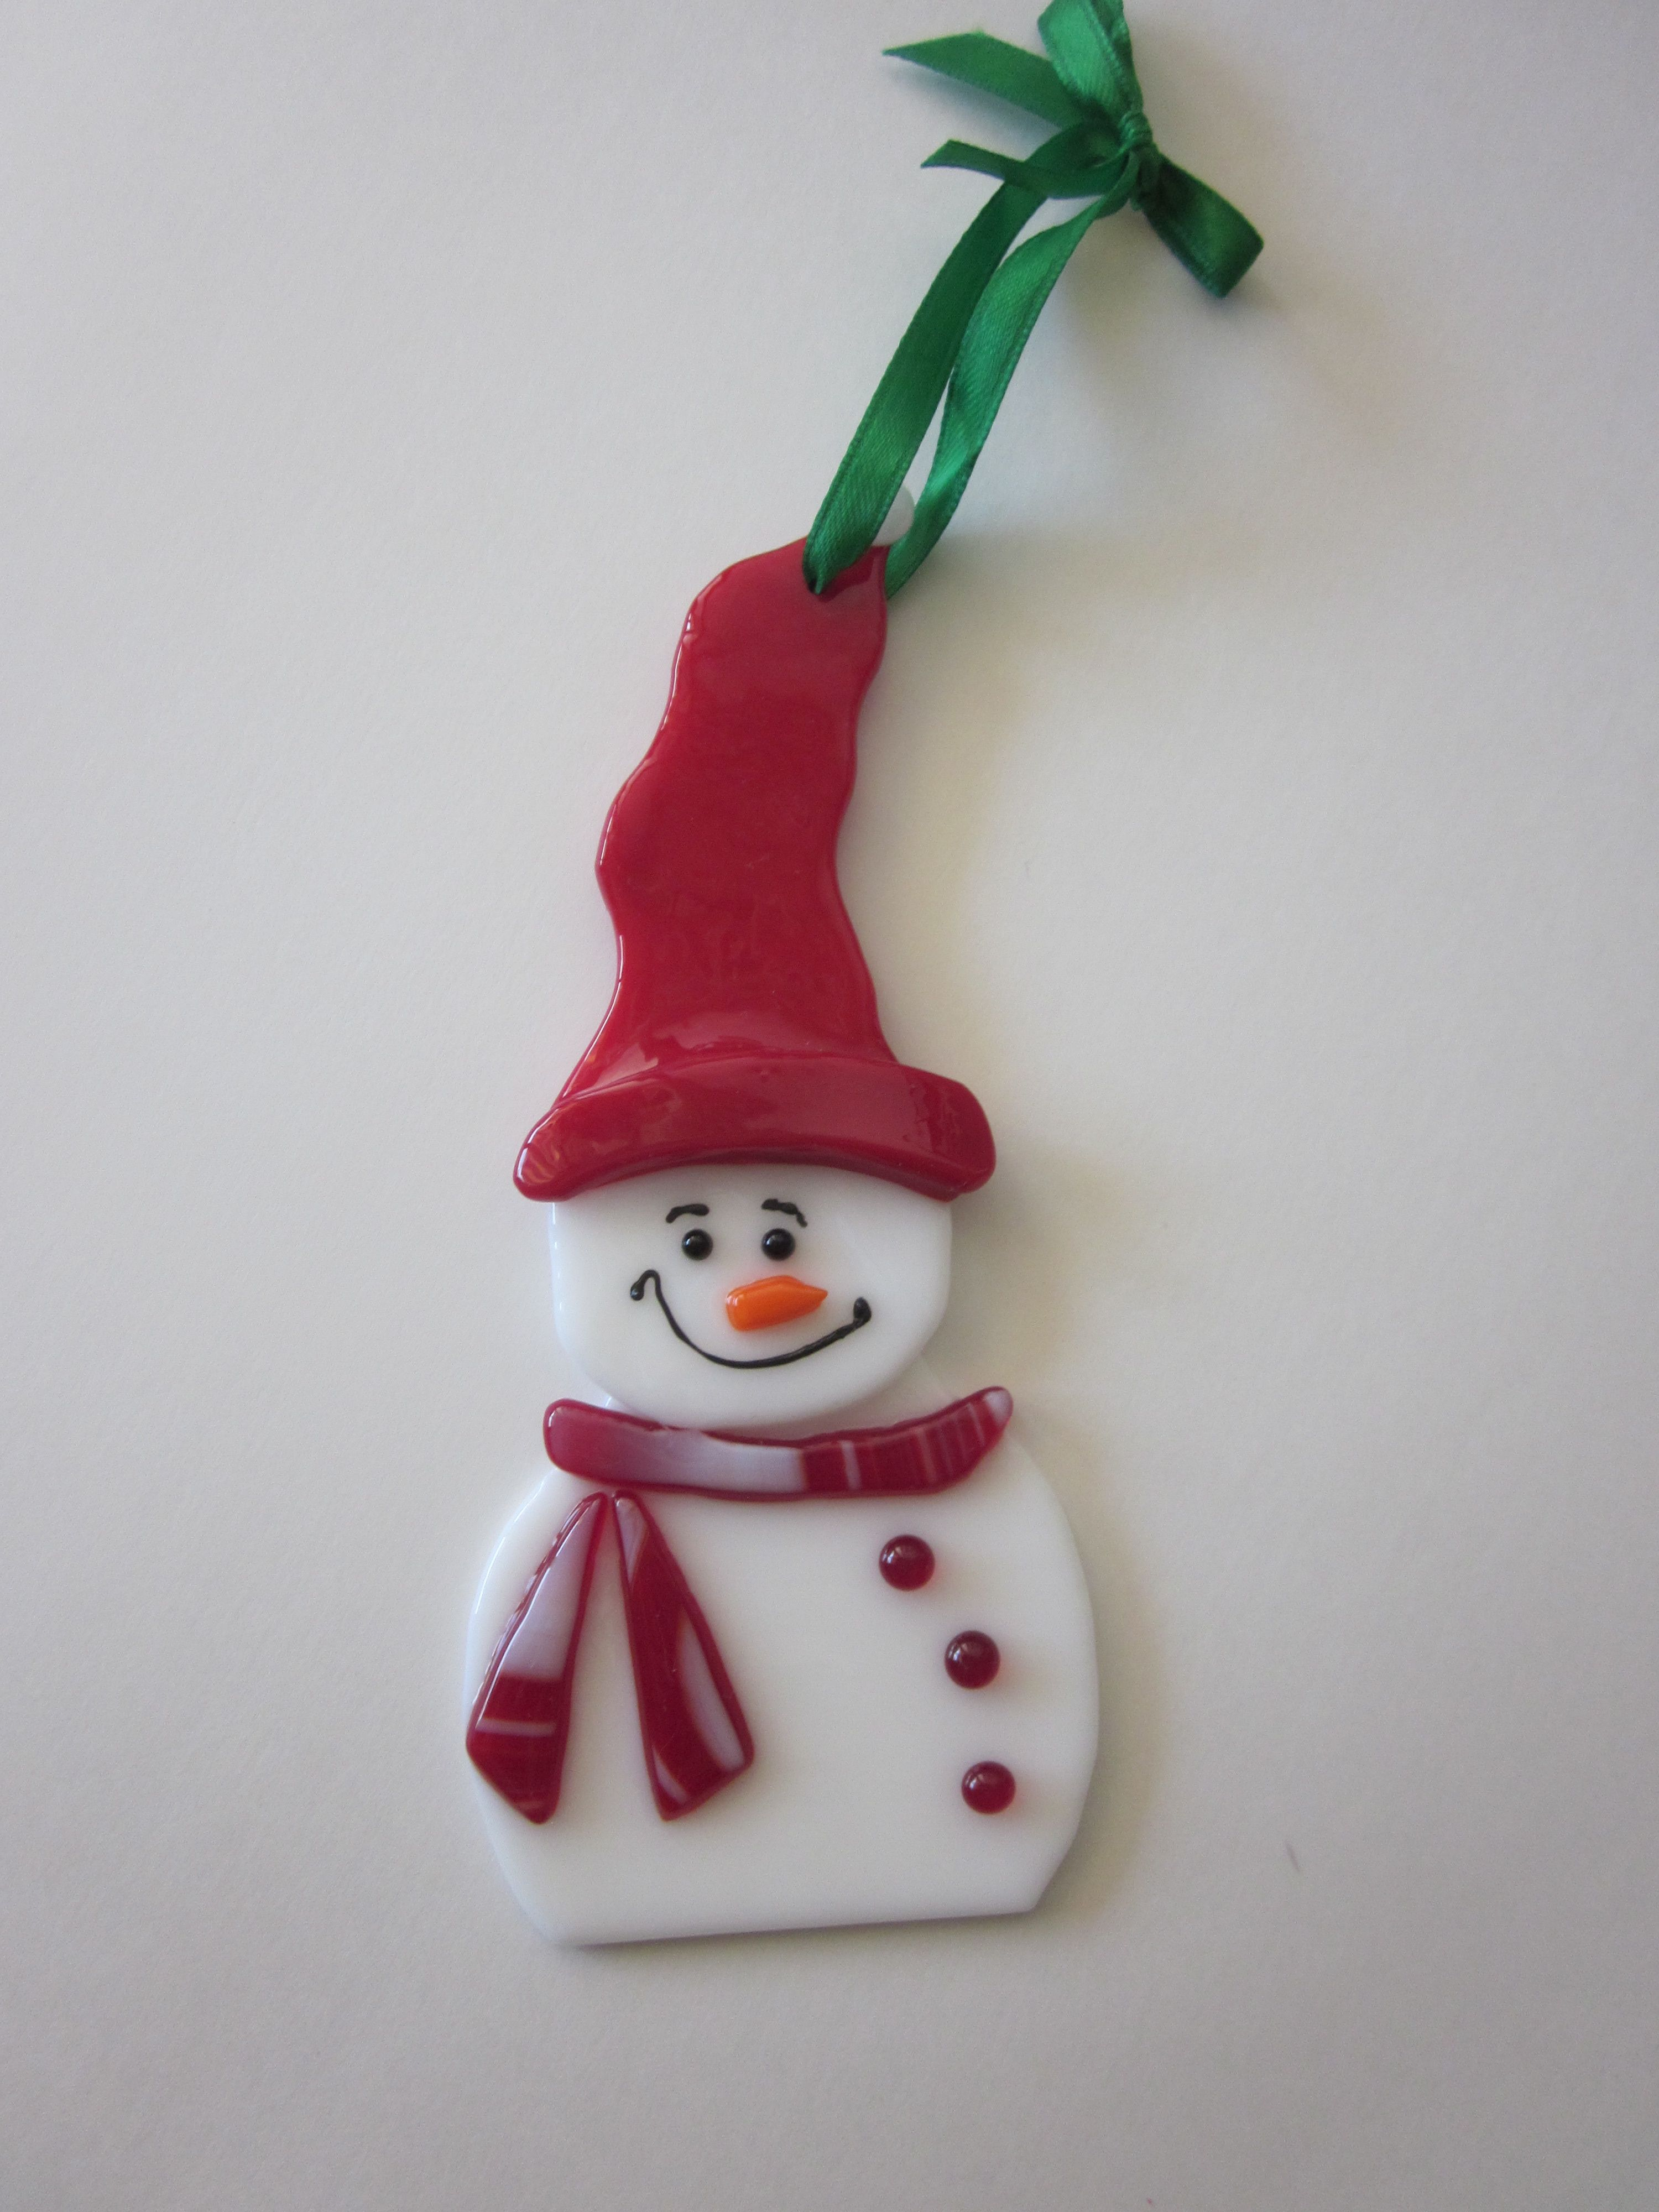 Fused Glass Snowman Ornament Www Ebay Com Usr Mattsglassact Fused Glass Ornaments Glass Christmas Decorations Stained Glass Ornaments